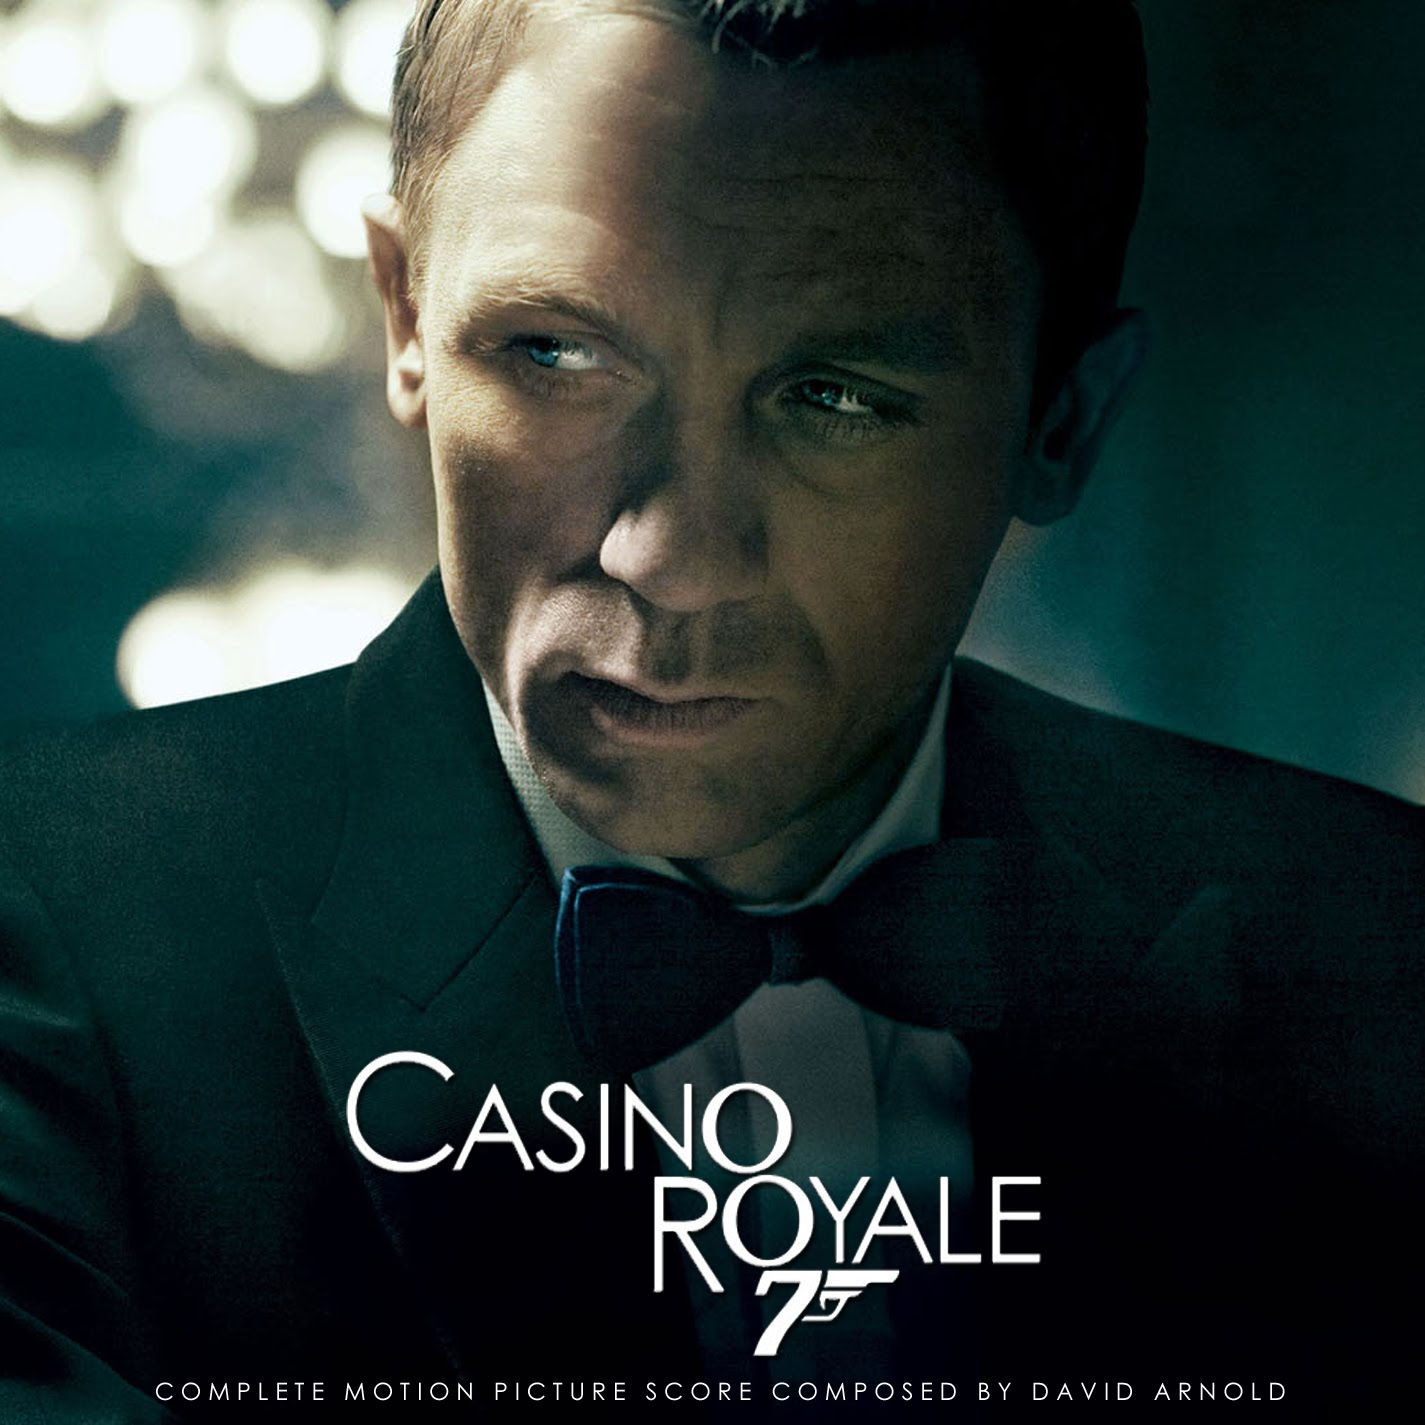 casino royale 2006 full movie online free zizzling hot